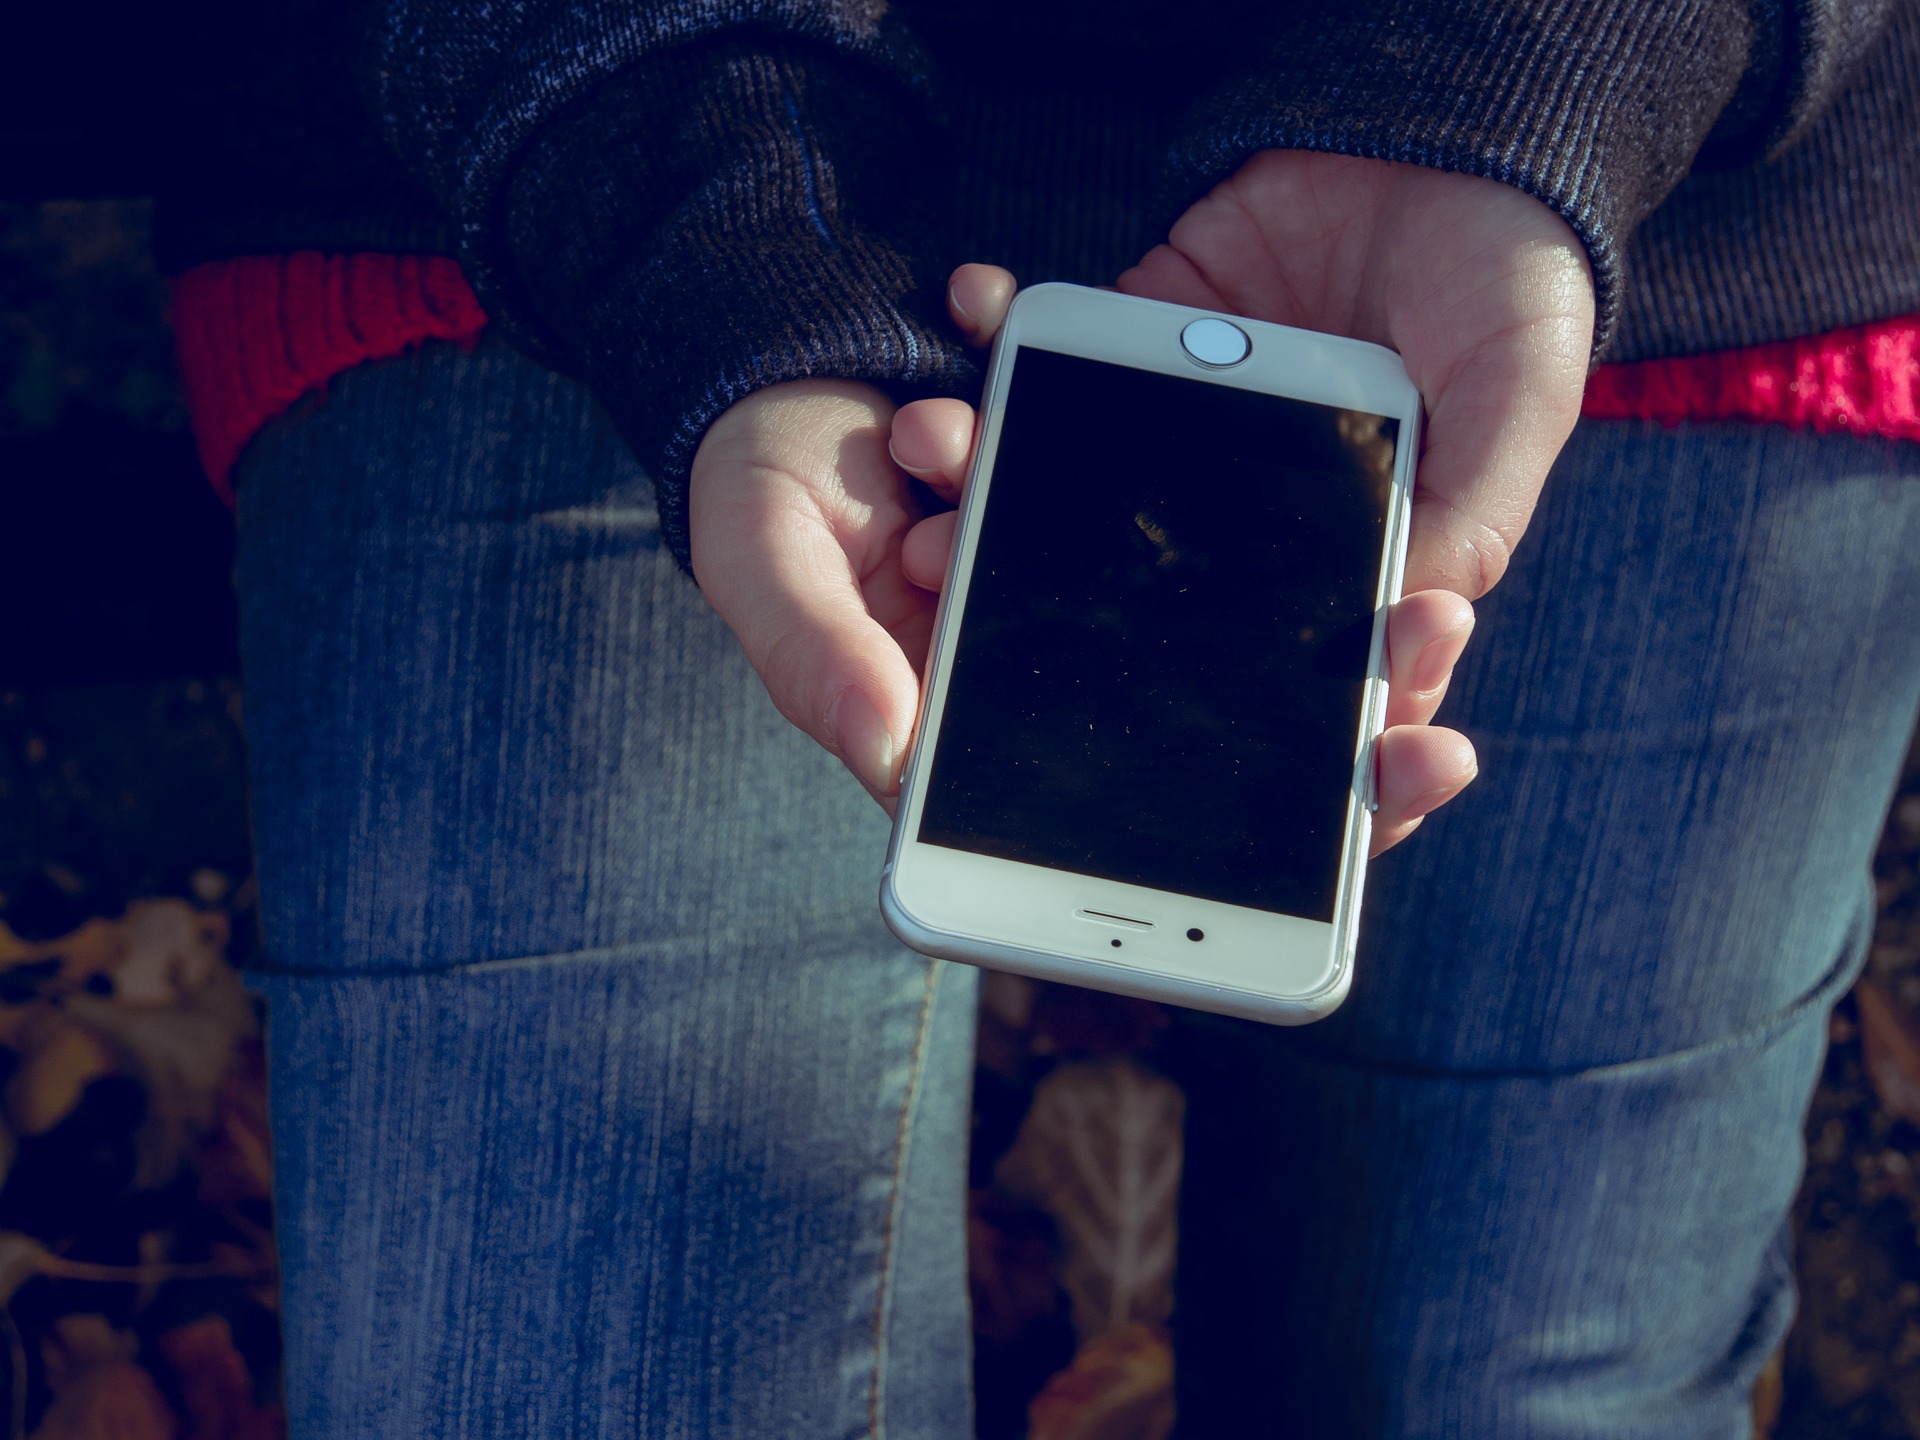 Iphone in the hands photo